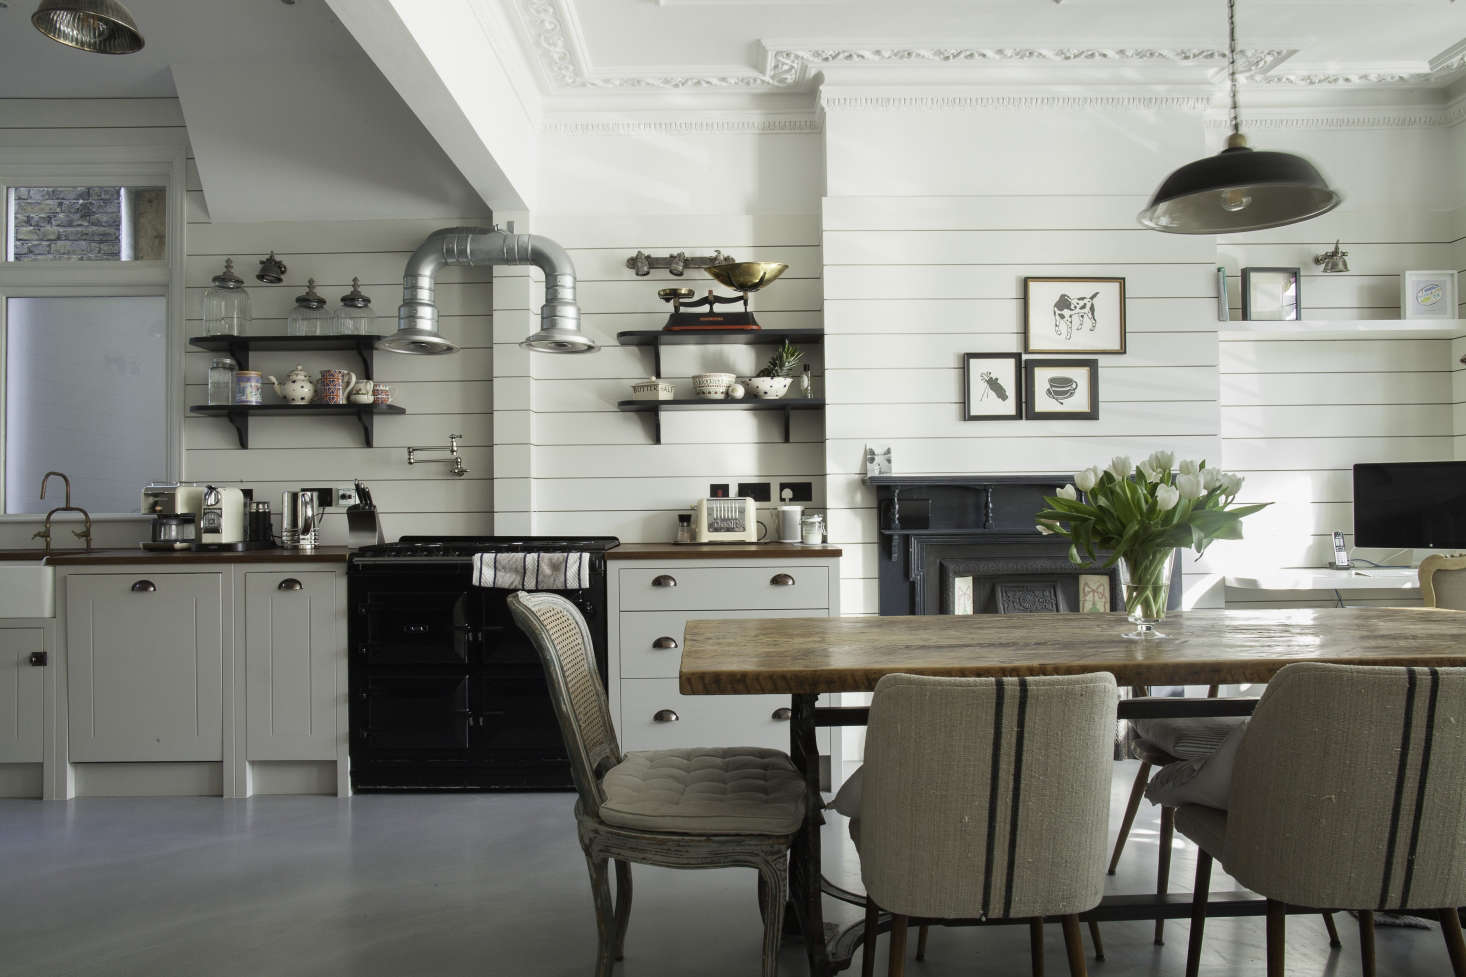 Shiplap wood paneling in a classic English kitchen remodel